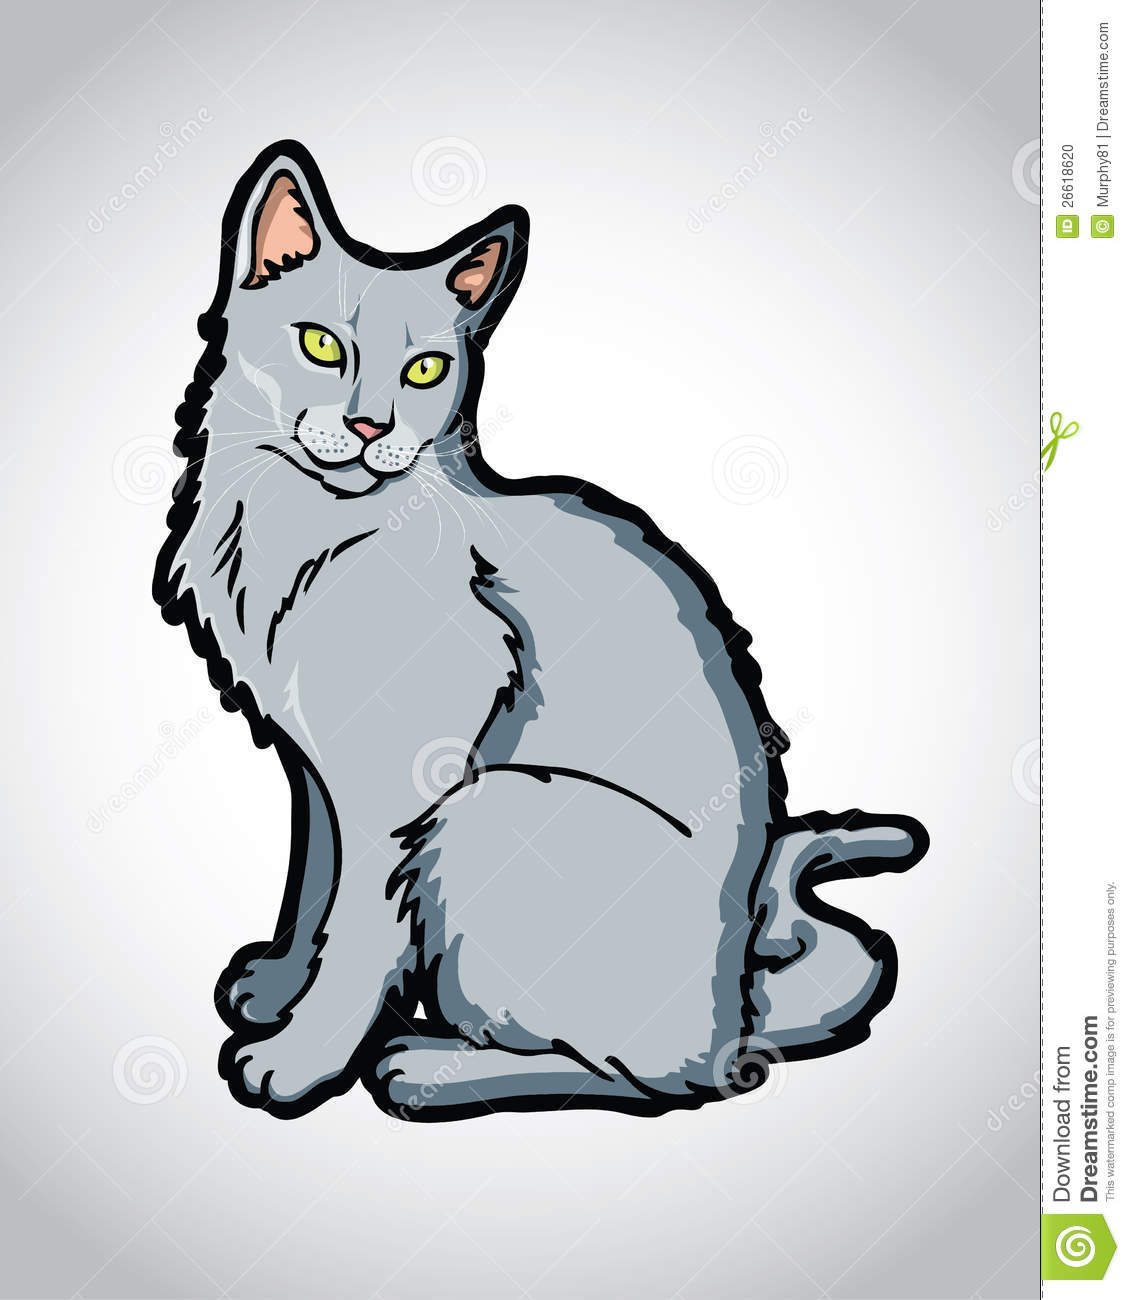 Chartreux clipart #14, Download drawings